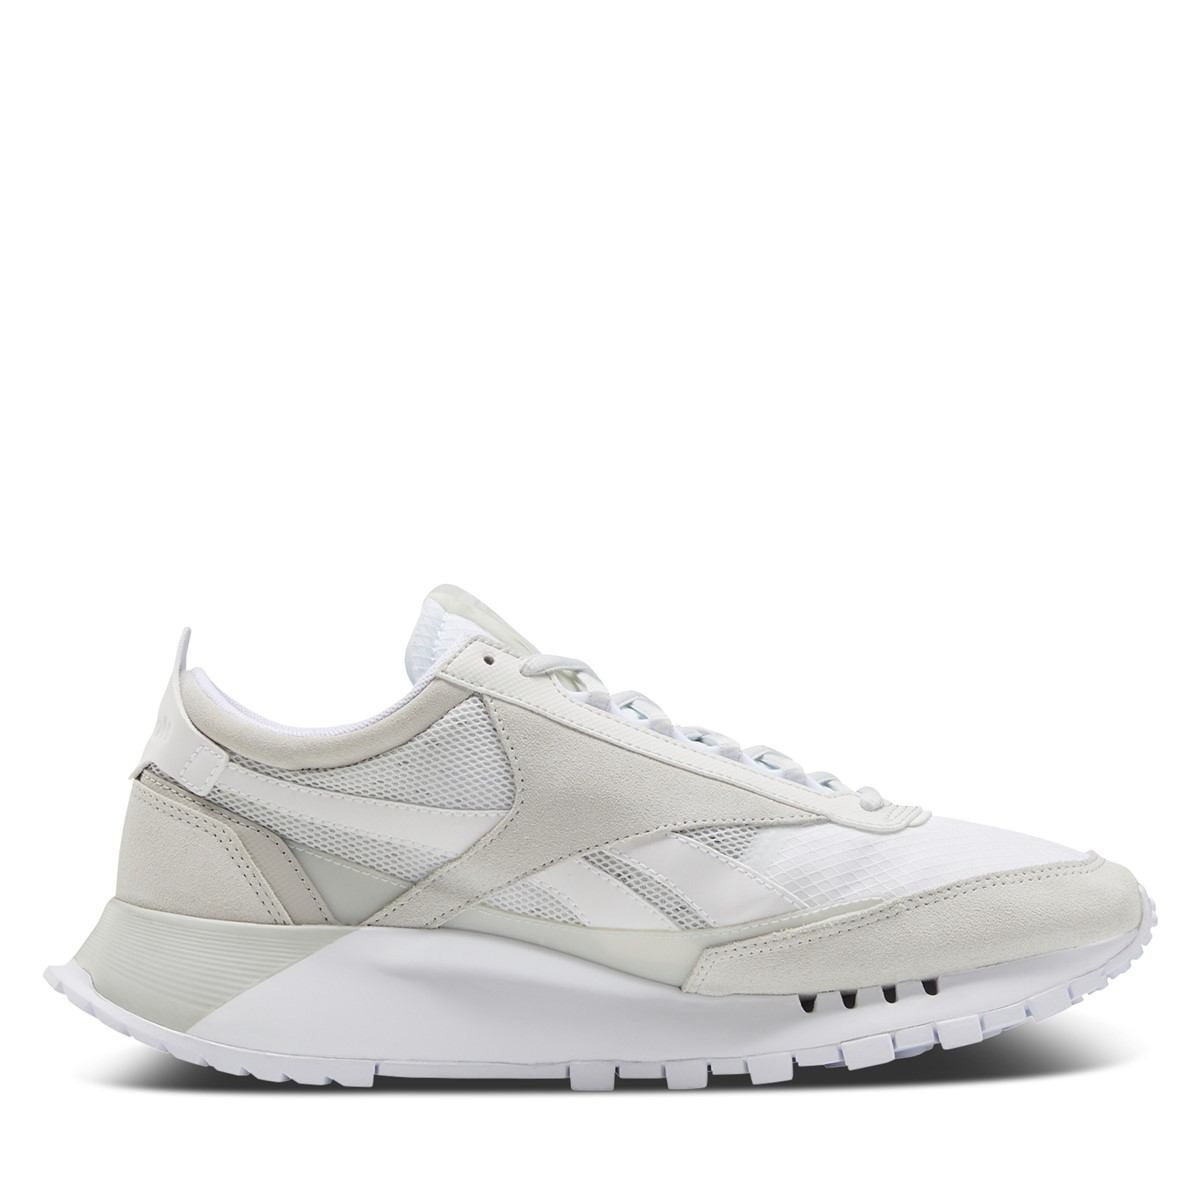 Men's Classic Legacy Sneakers in White